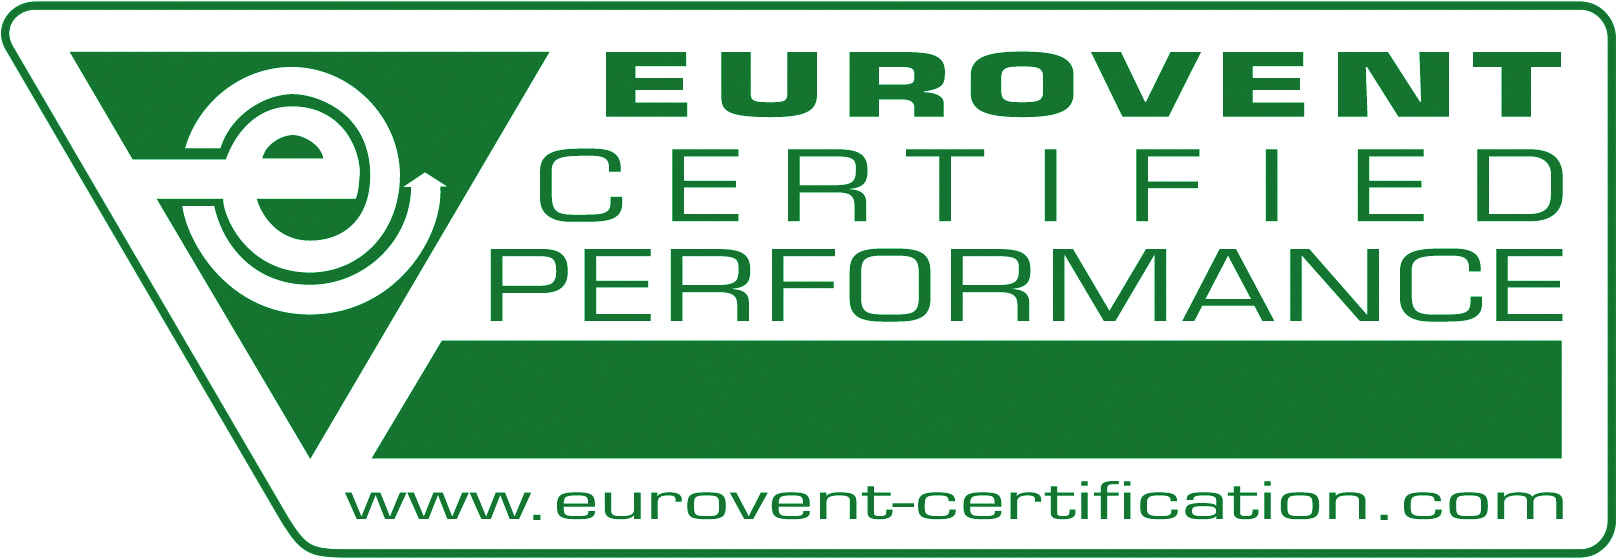 euroventcertification